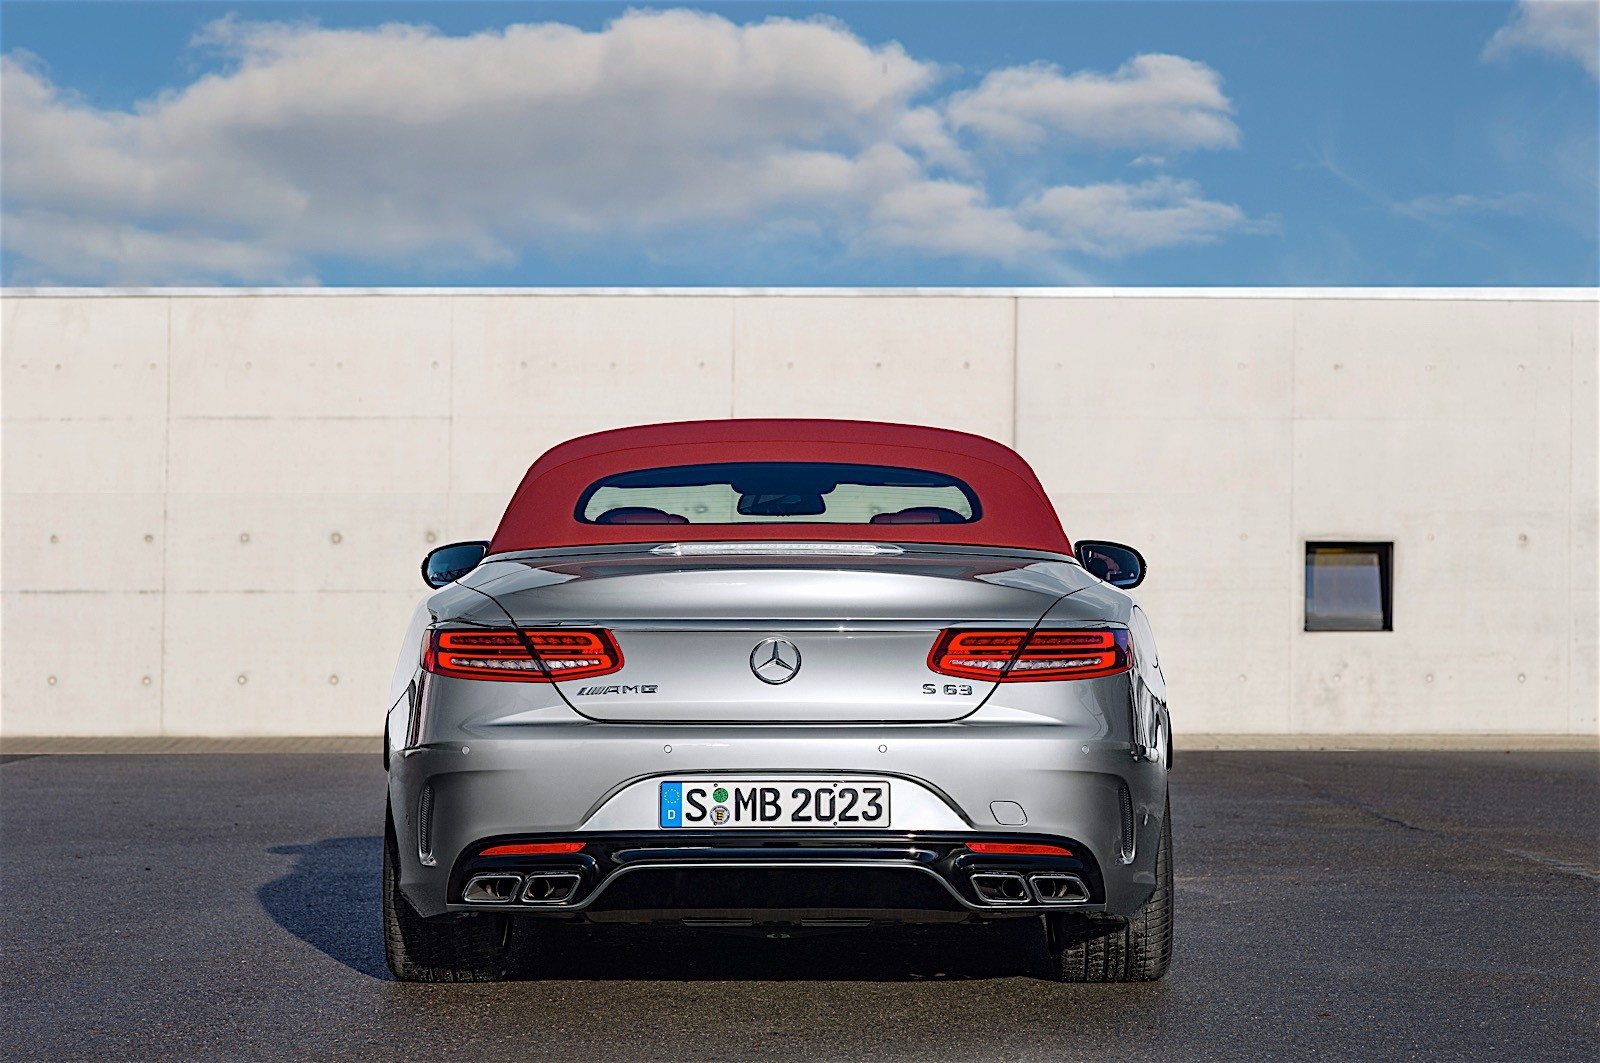 https://s1.cdn.autoevolution.com/images/news/gallery/mercedes-amg-unveils-anniversary-s-63-cabriolet-edition-130-photo-gallery_2.jpg